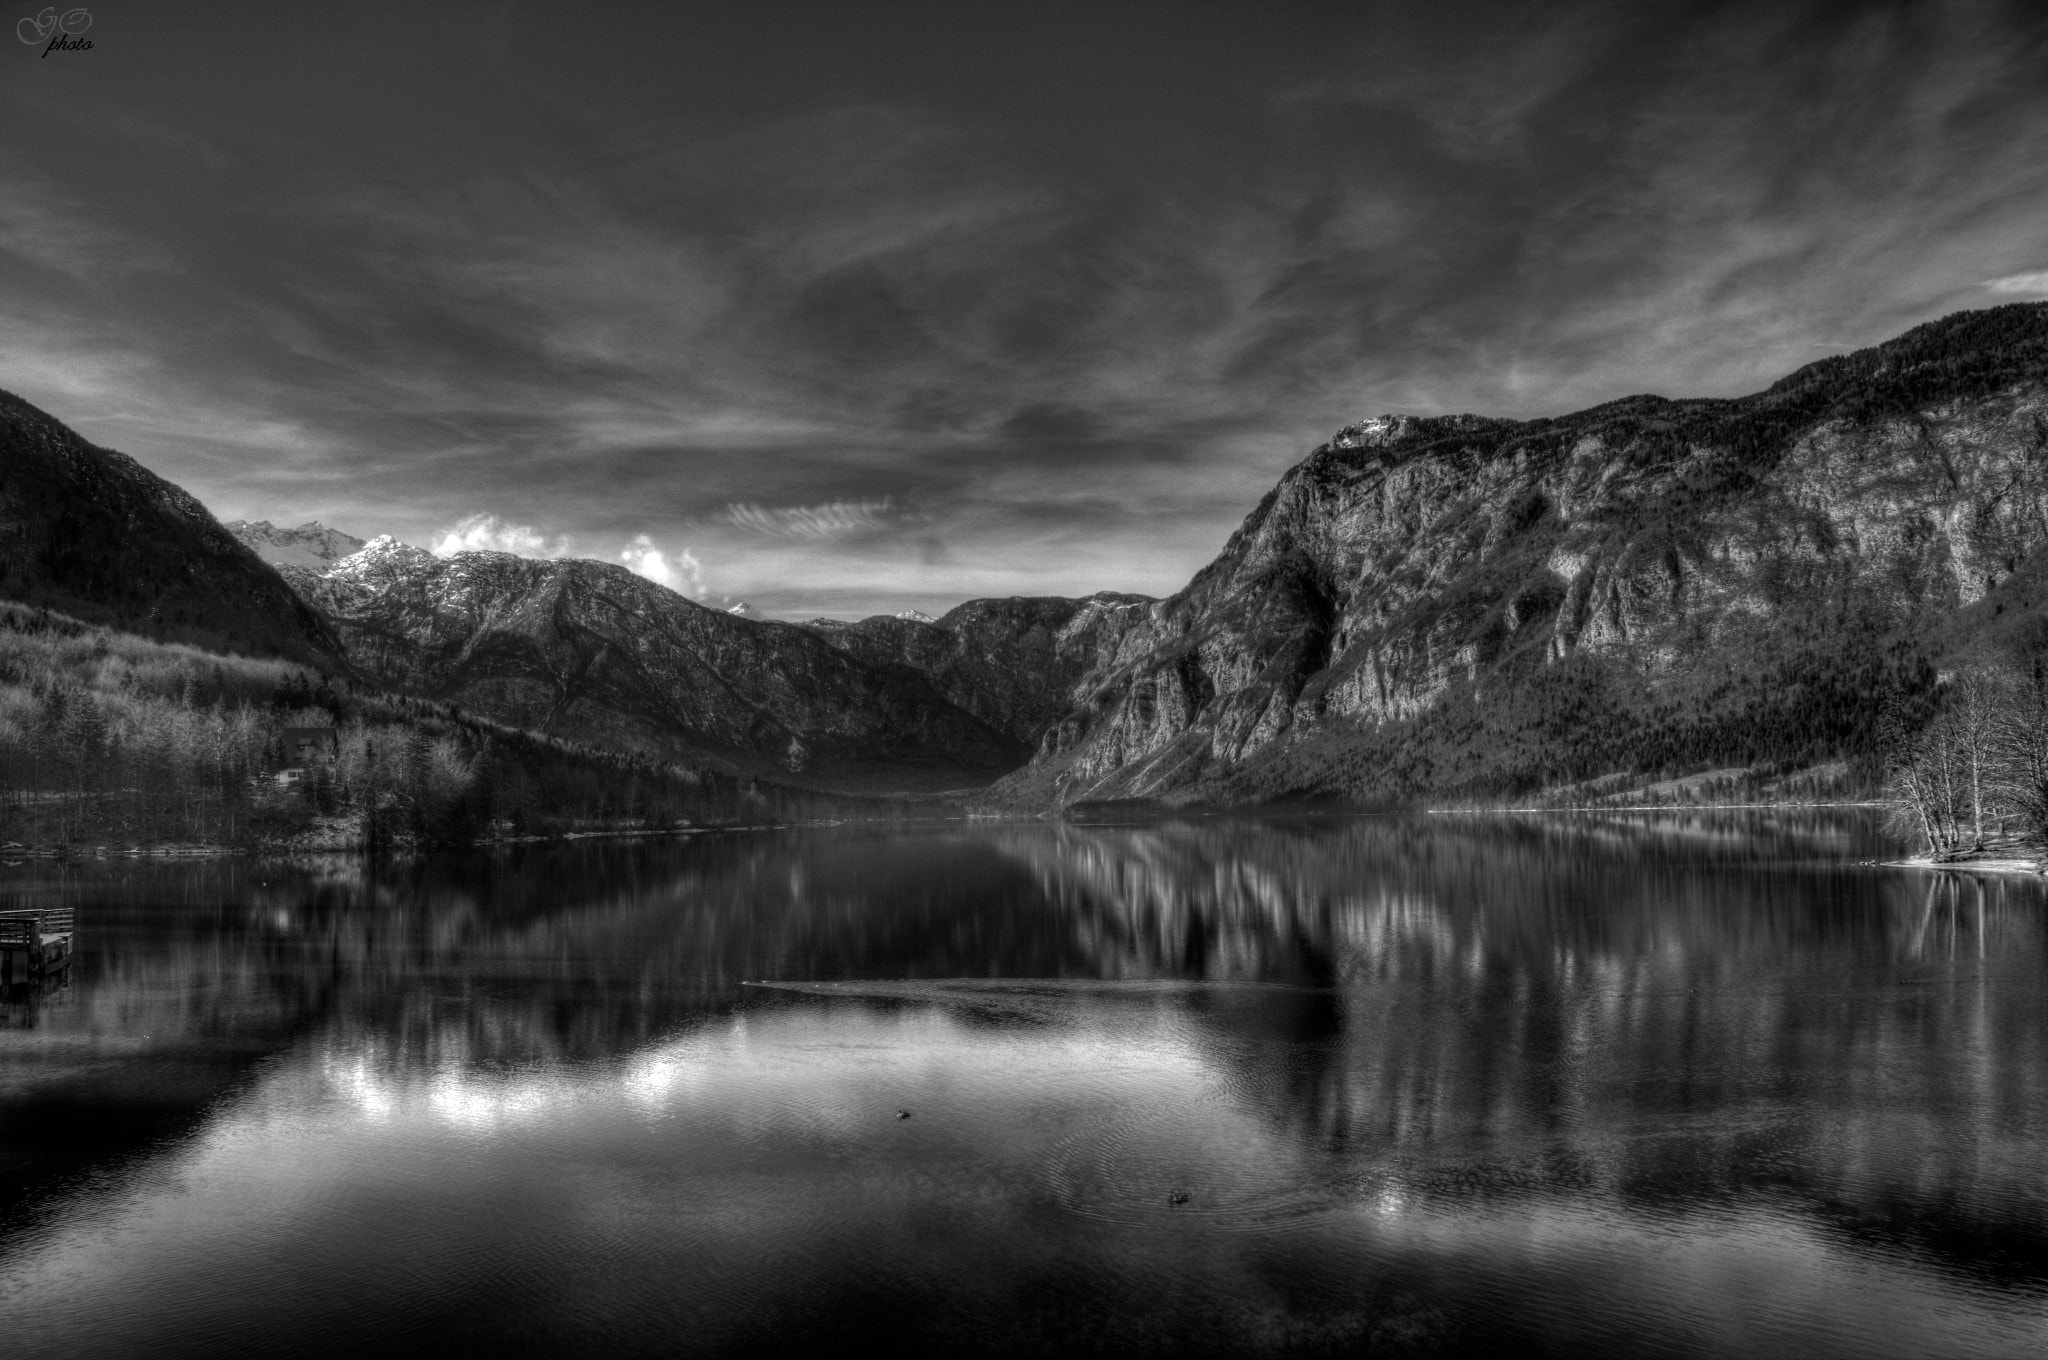 Photograph Lake Bohinj by Jernej Kovac on 500px